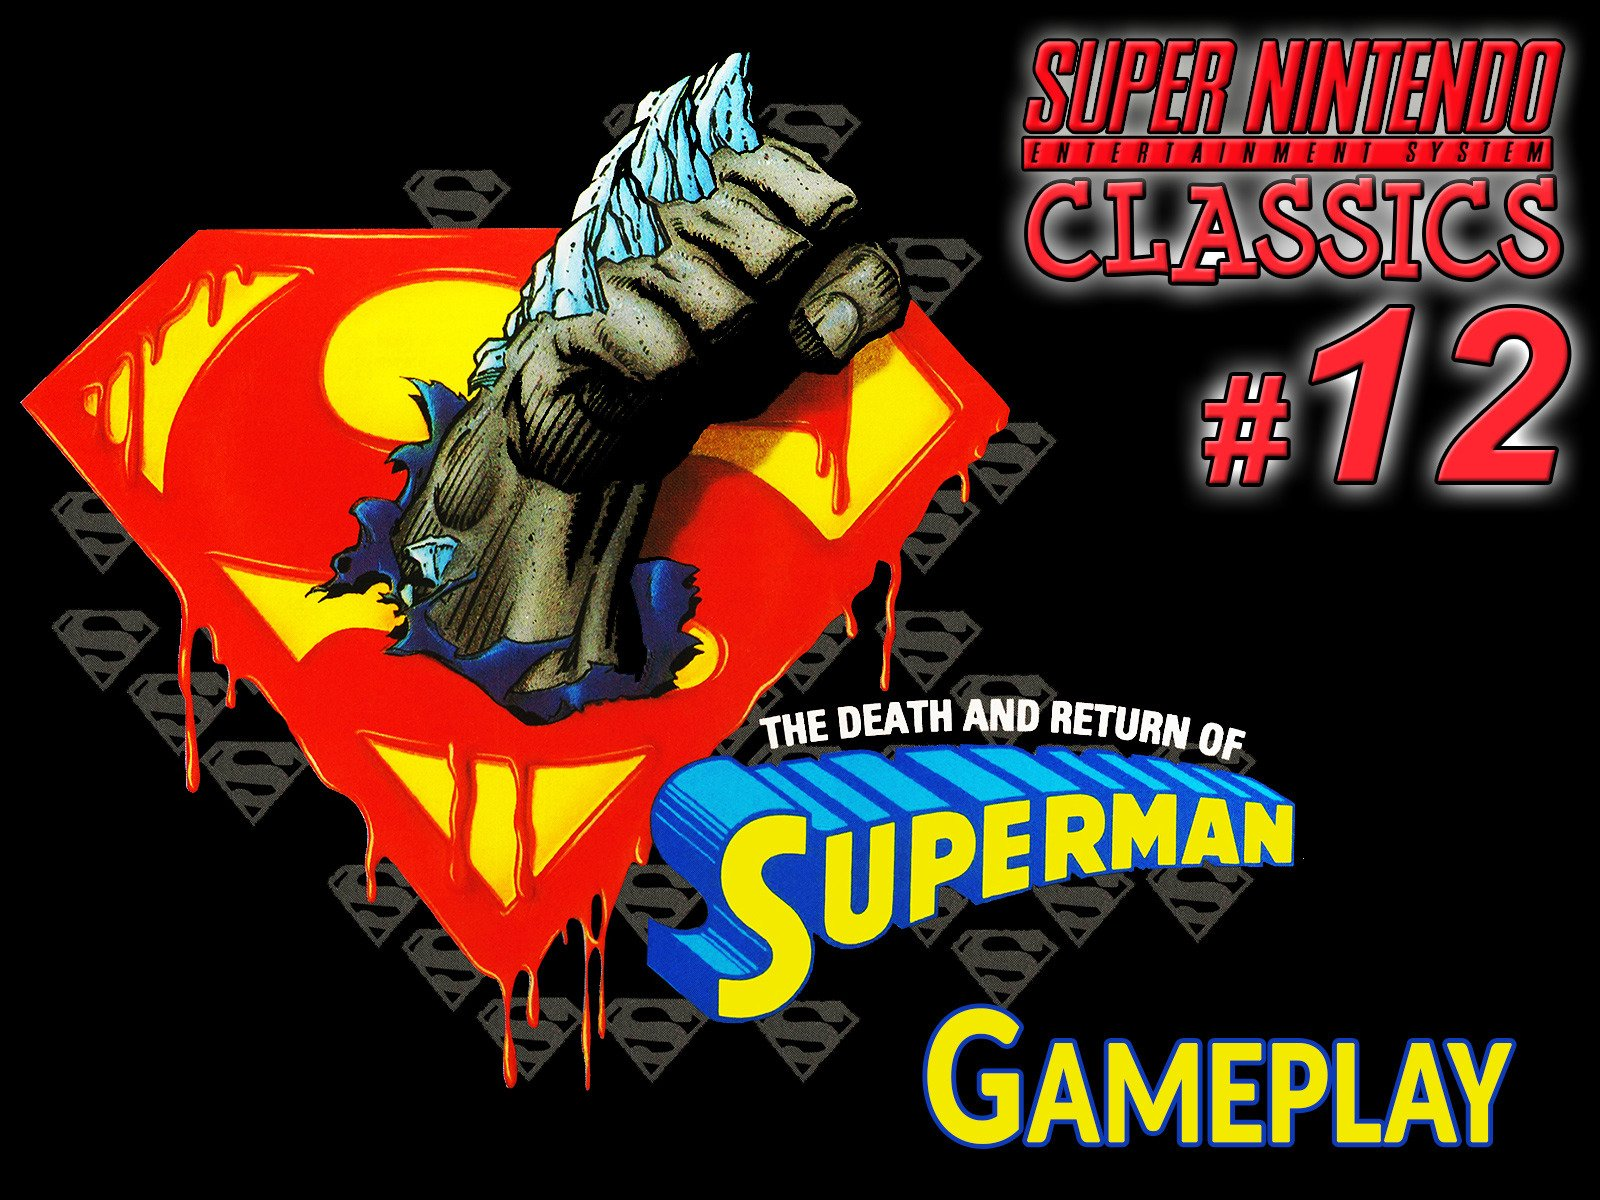 Clip: Death and Return of Superman Gameplay (SNES Classics 12) on Amazon Prime Instant Video UK